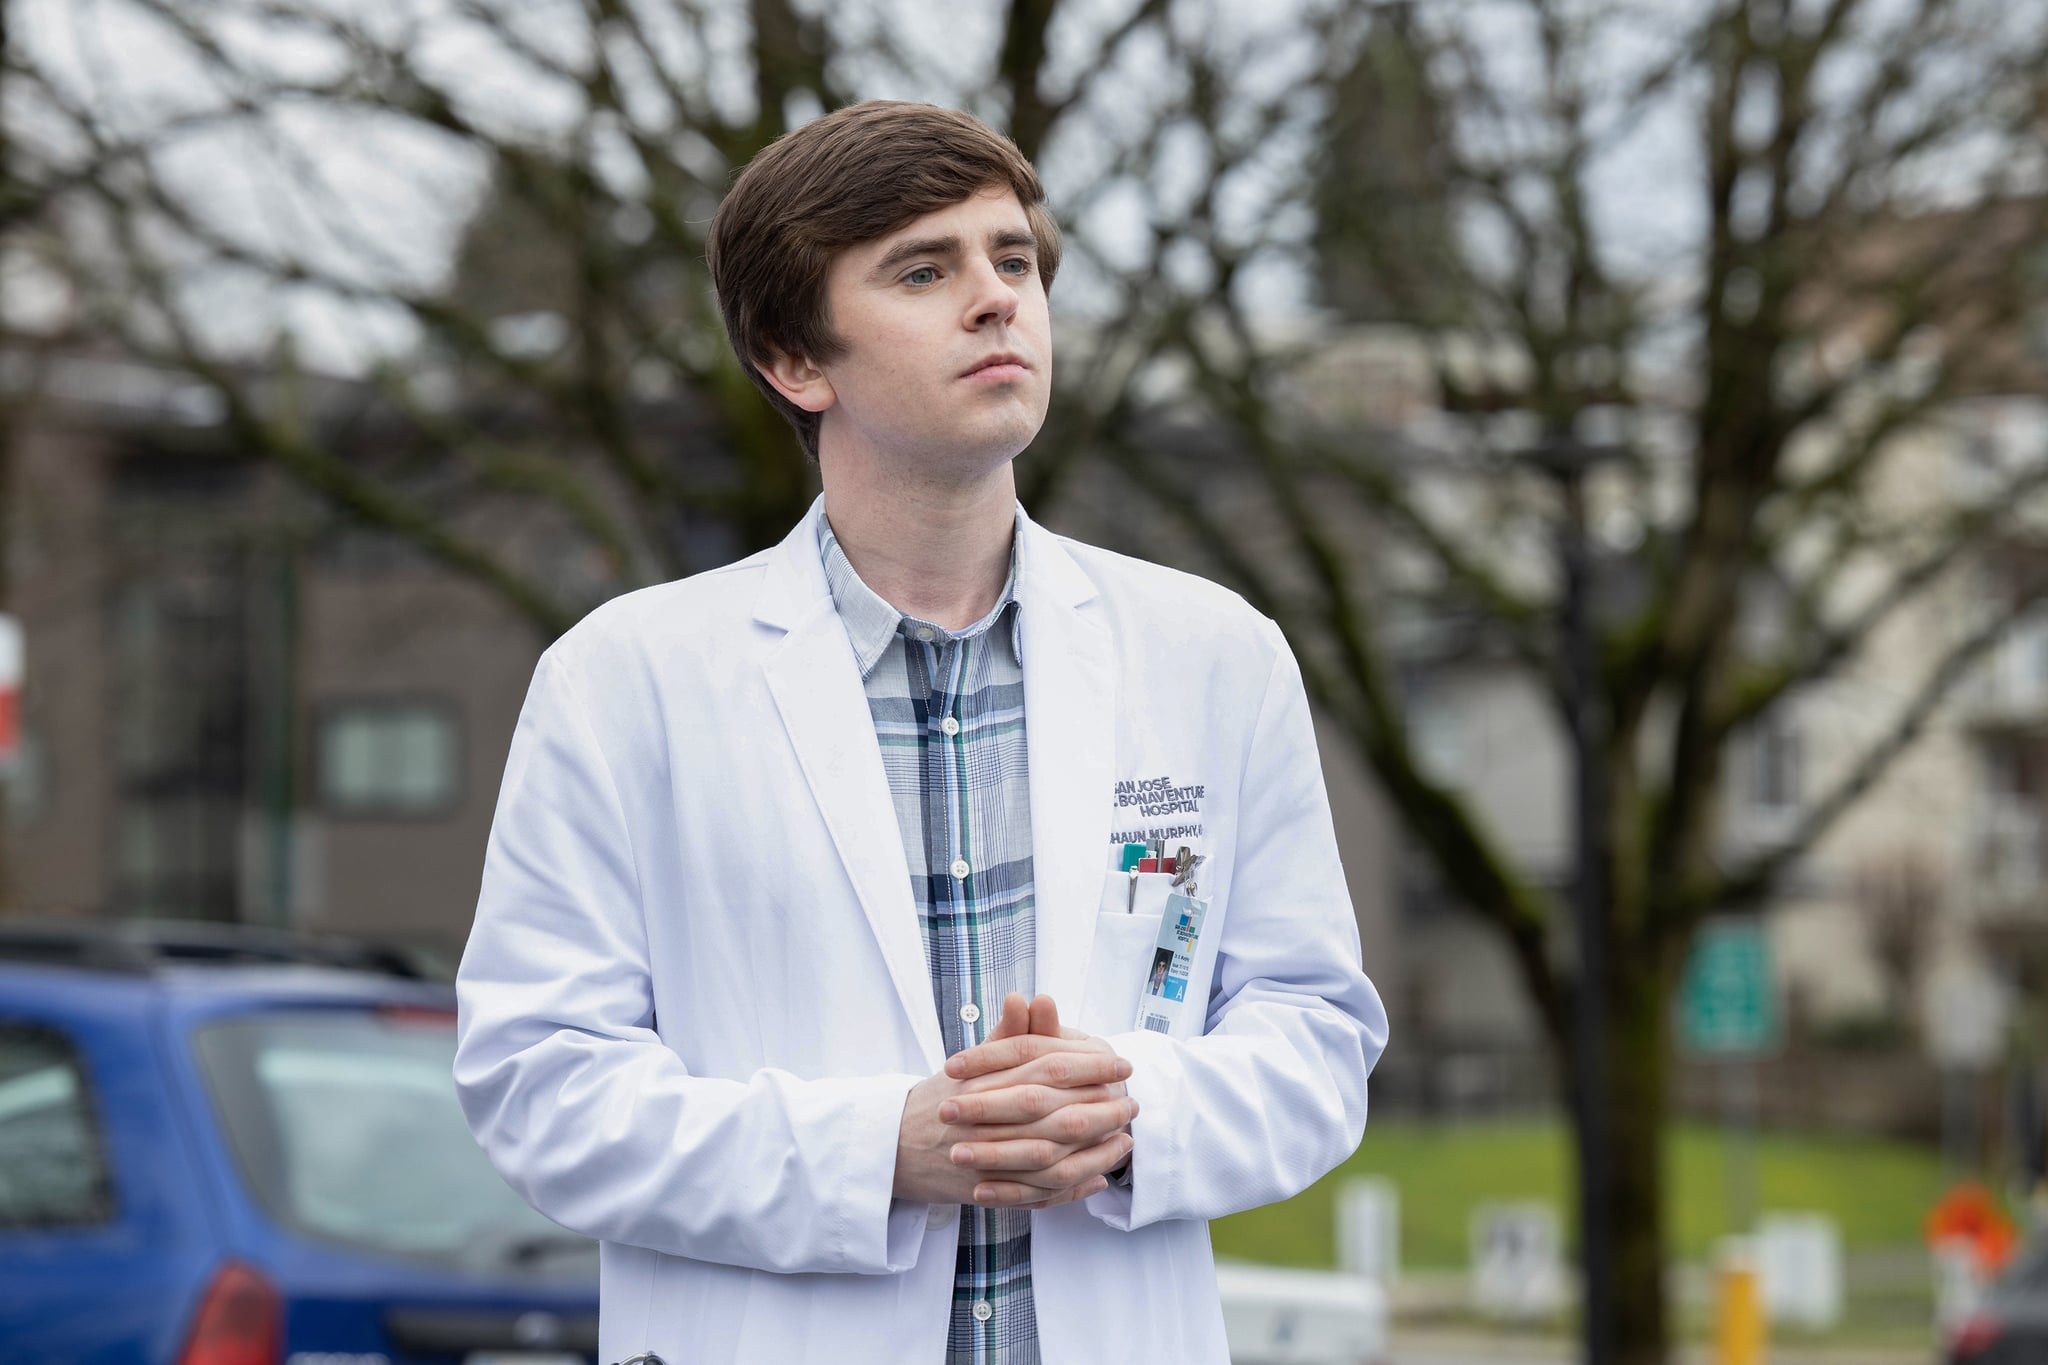 THE GOOD DOCTOR -